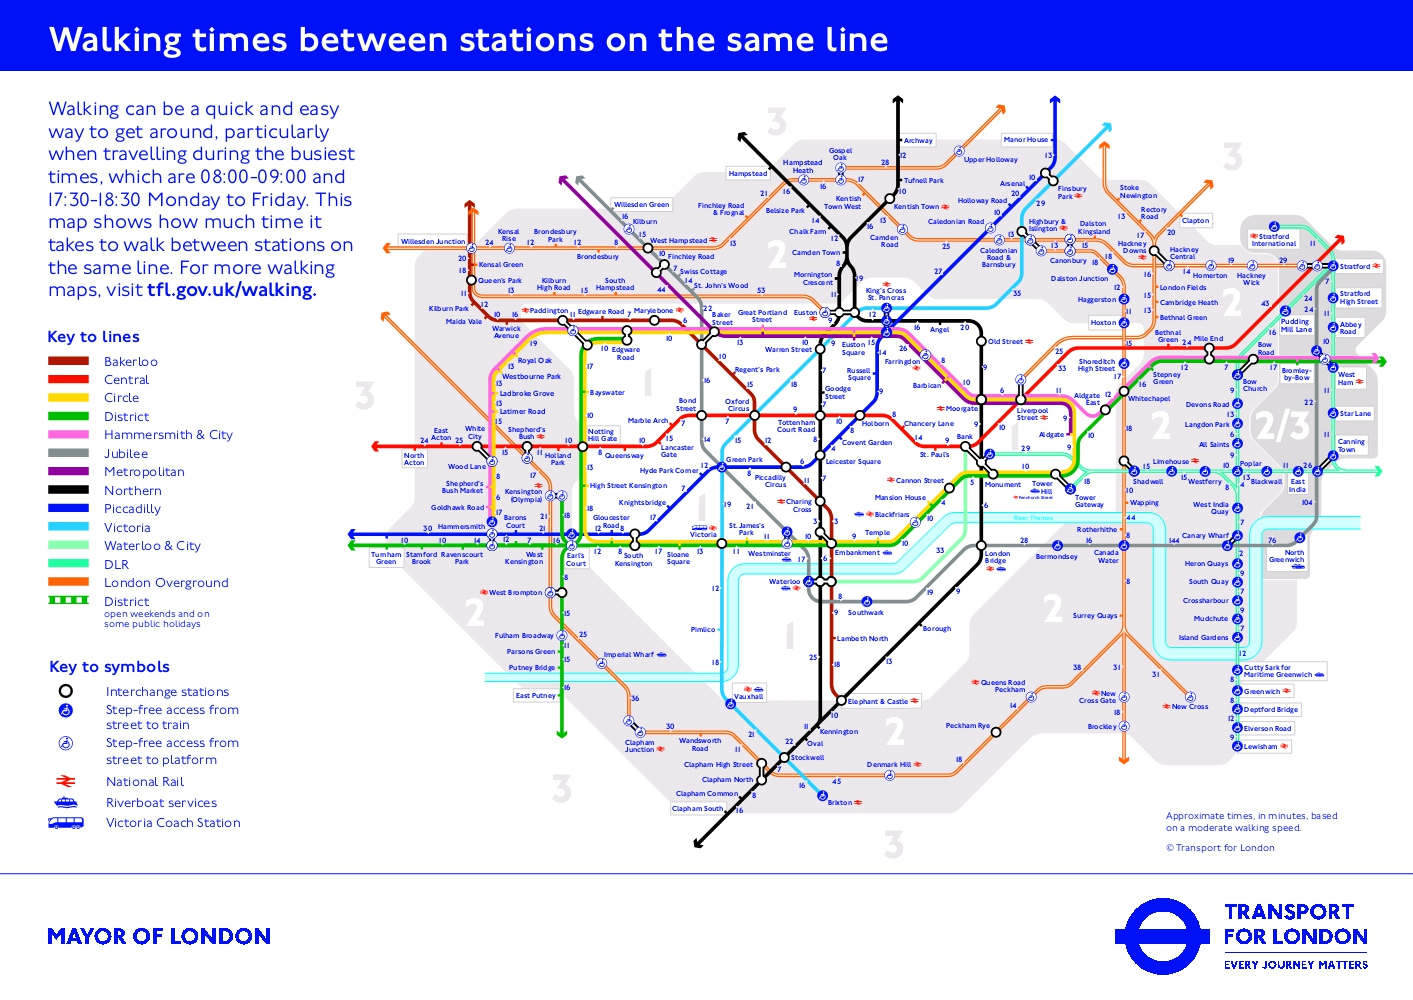 here is the pdf version of the london underground walking map with the jpg format shown below as converted by the investintech software tool